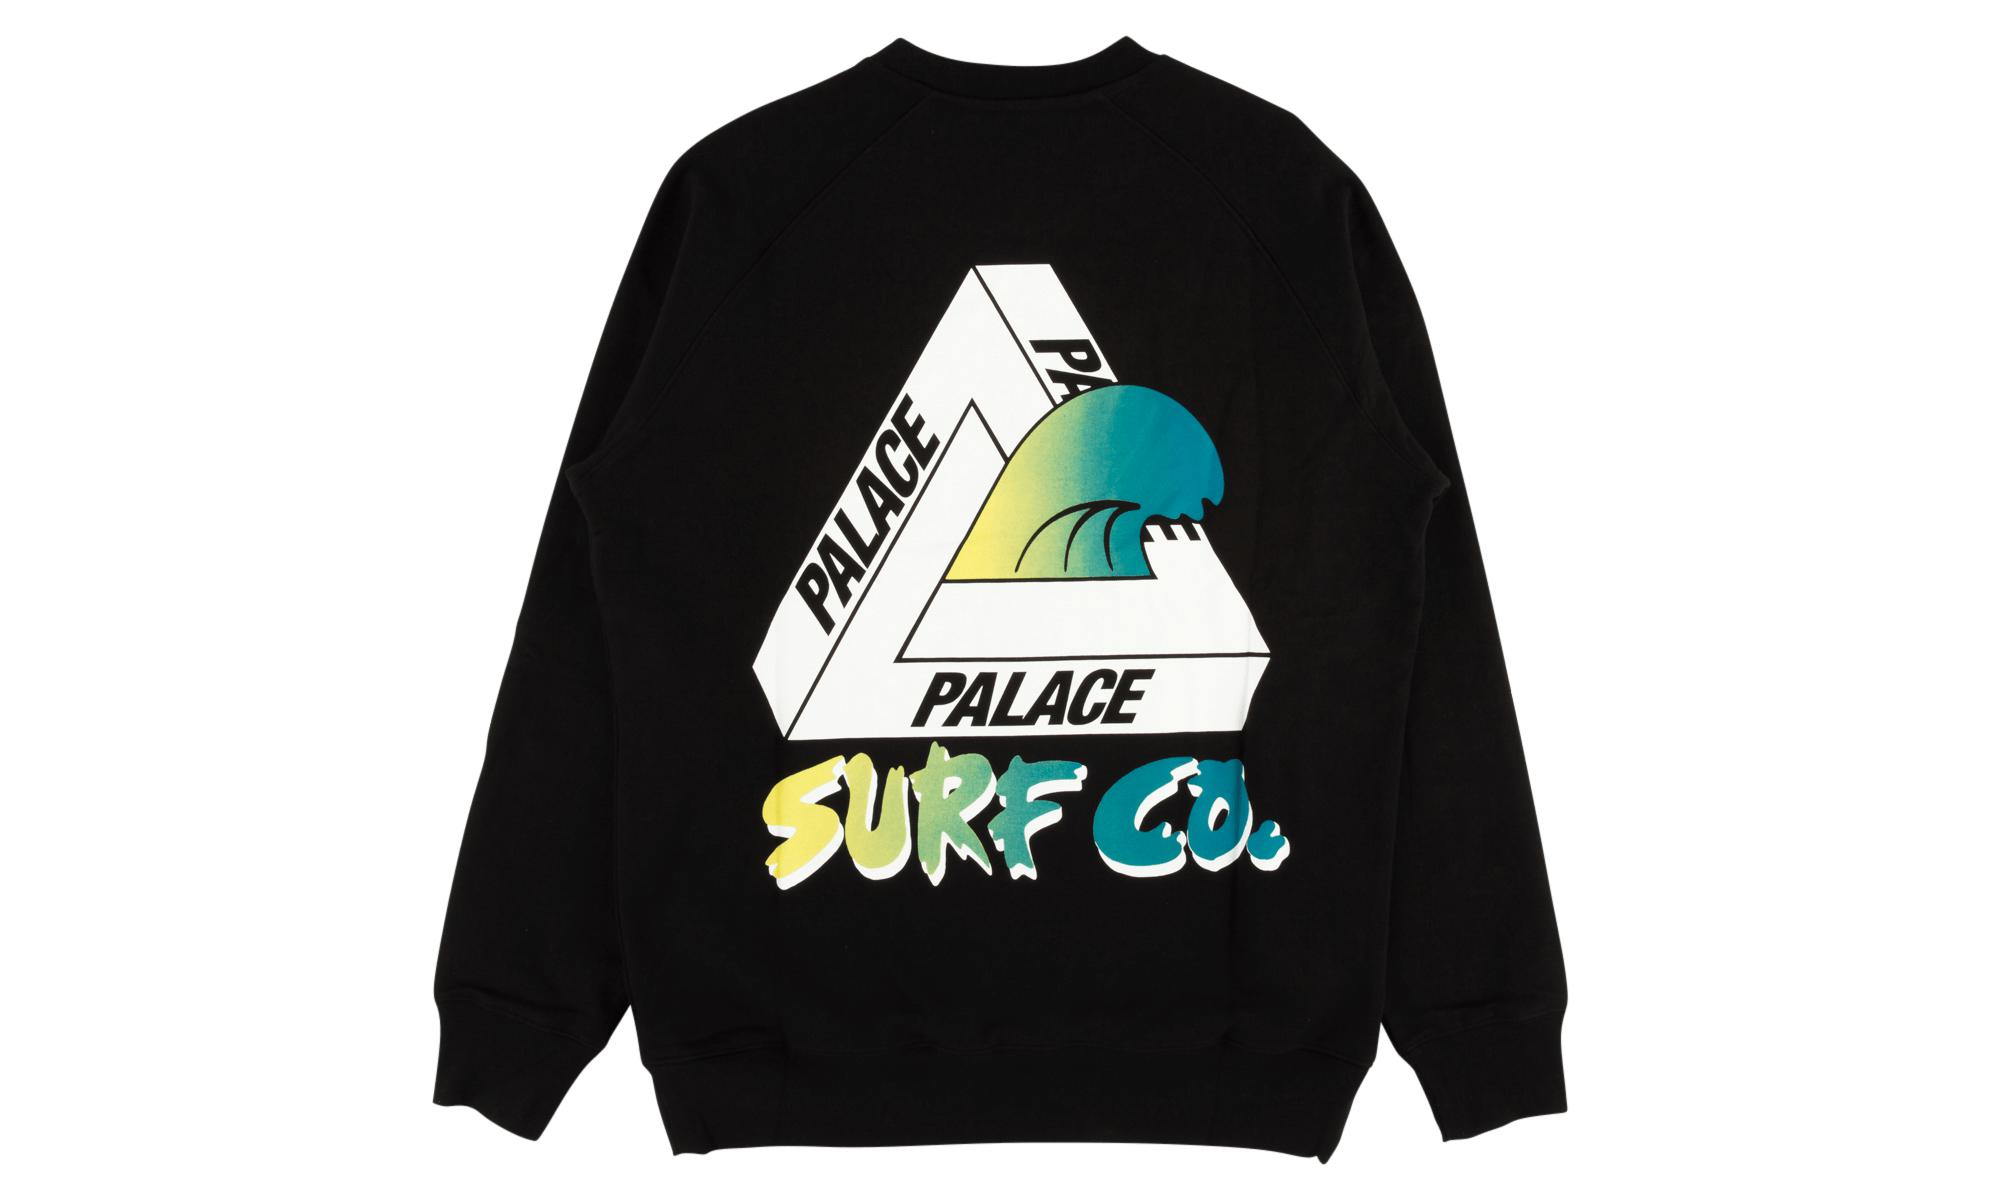 6a7a94c3d3c8 Lyst - Palace Surf Co Crew in Black for Men